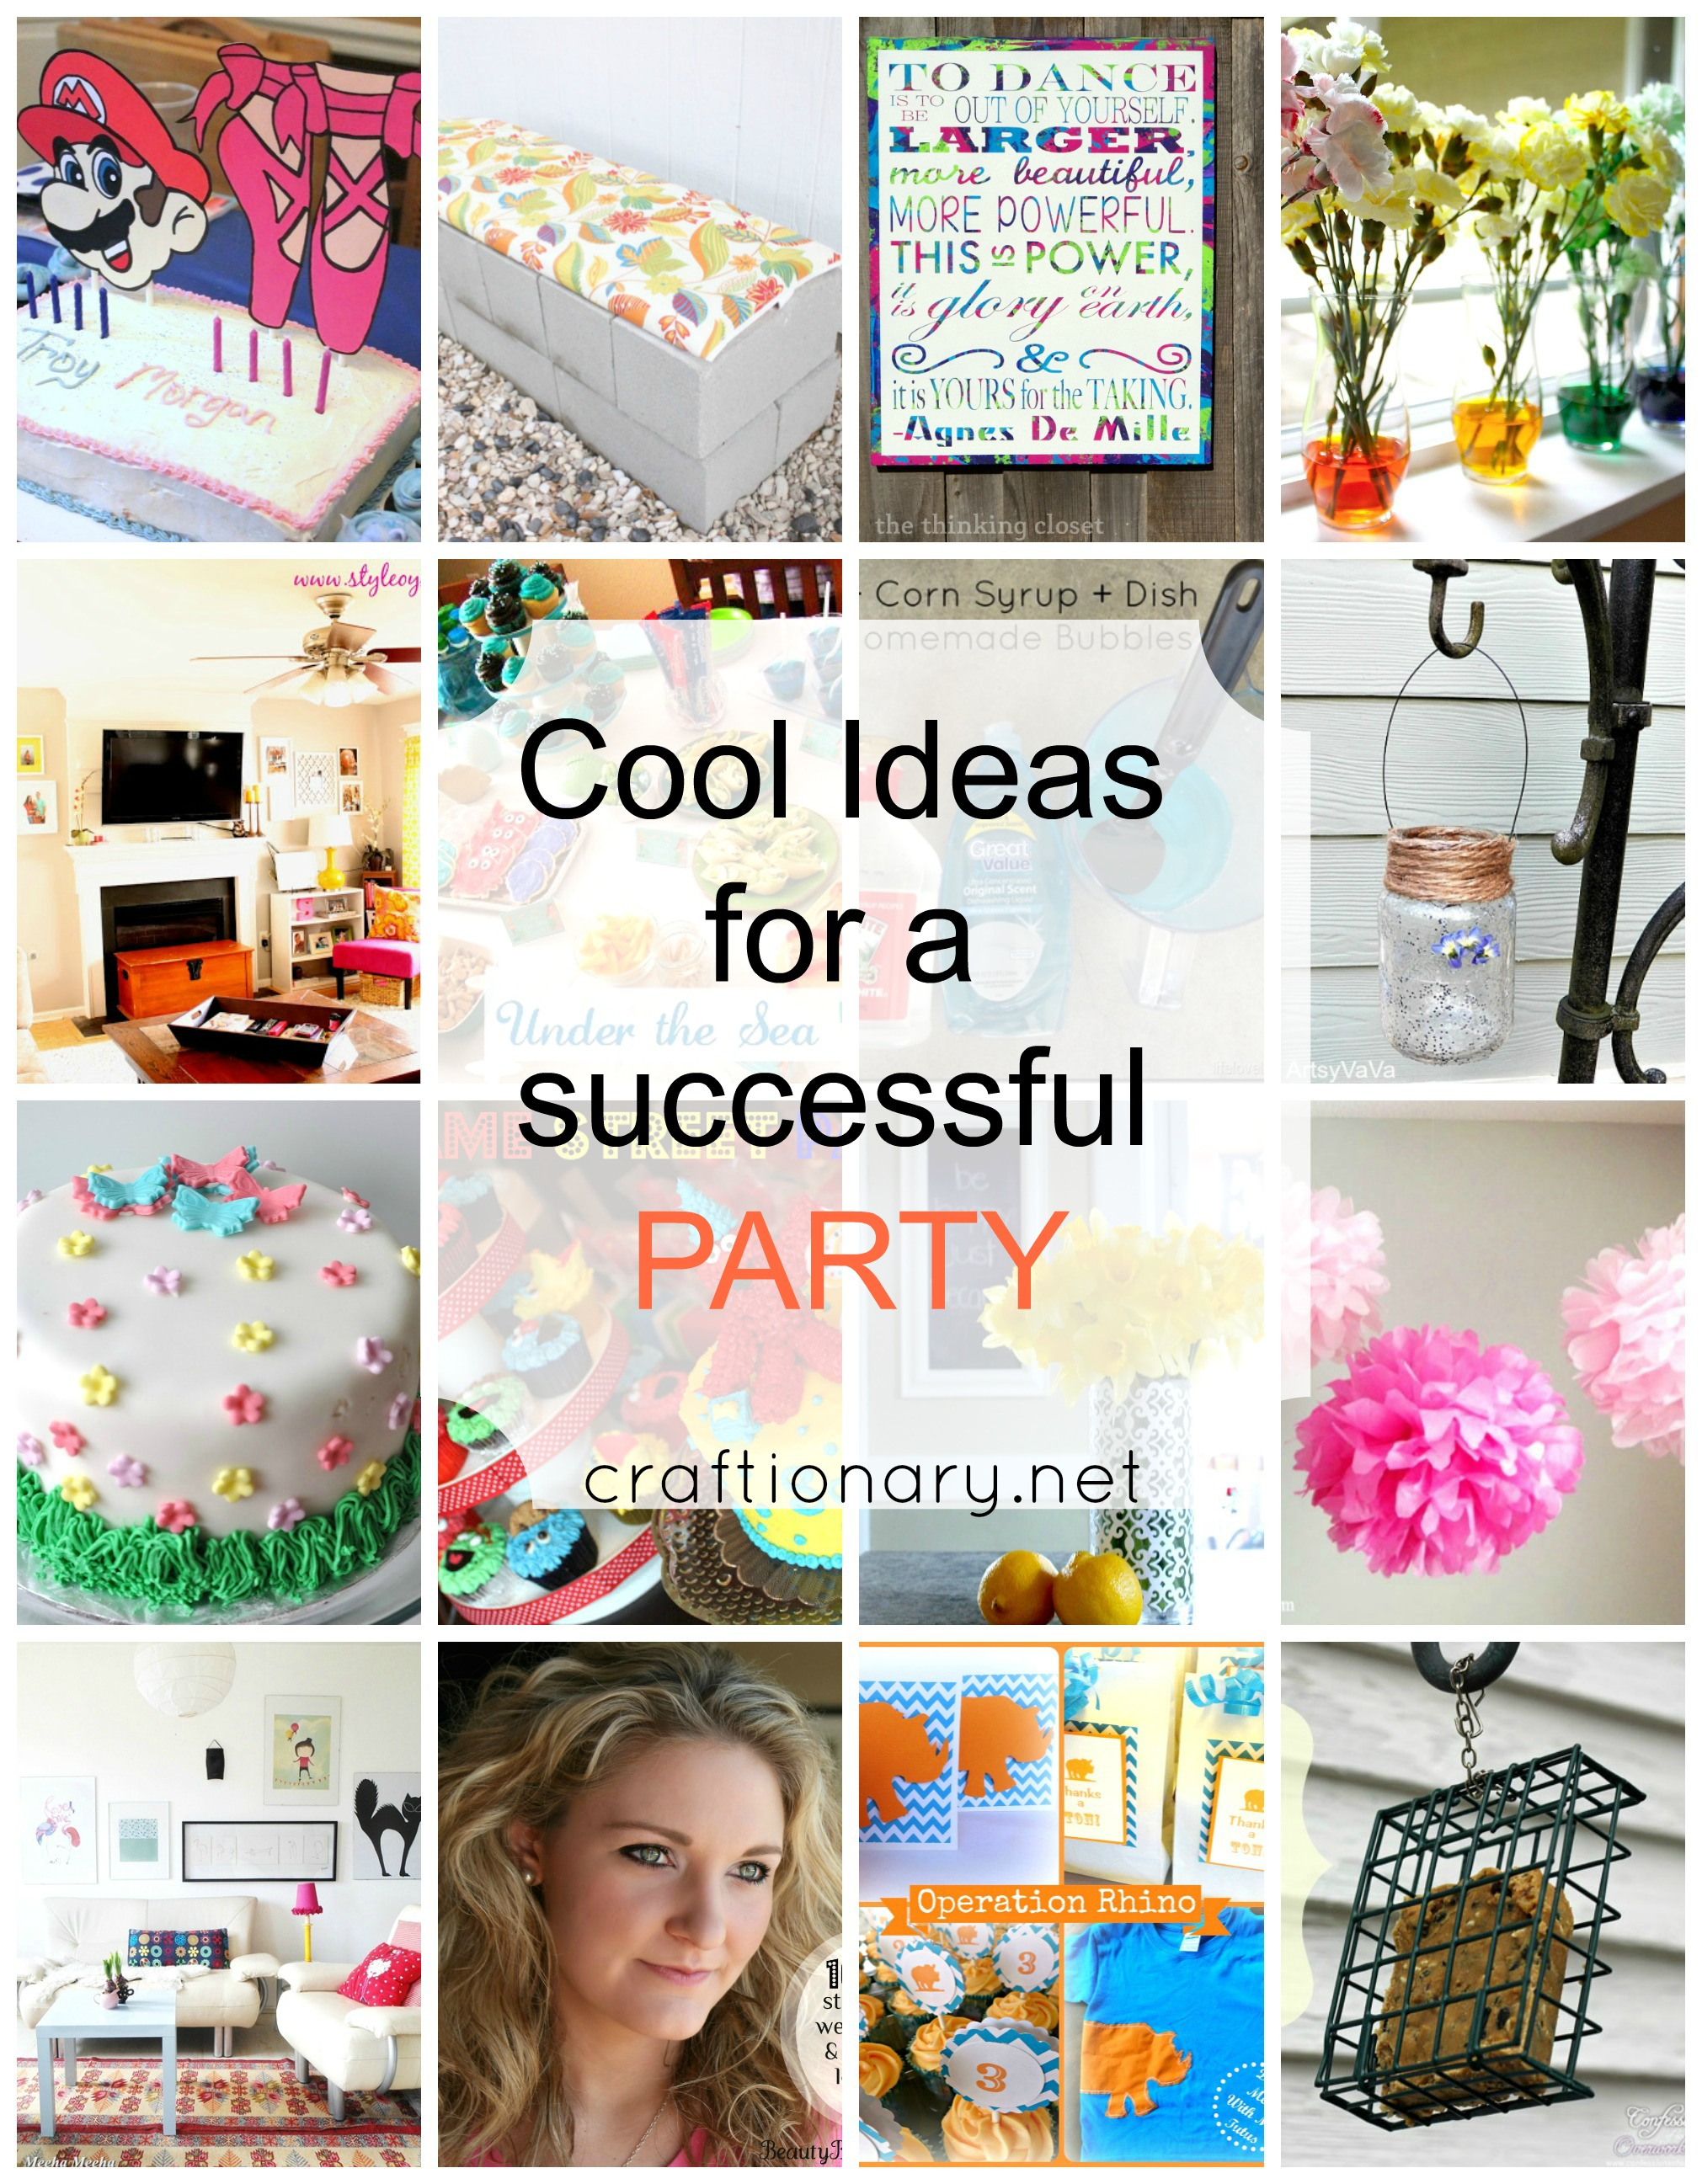 Craftionary for Fun ideas for adults